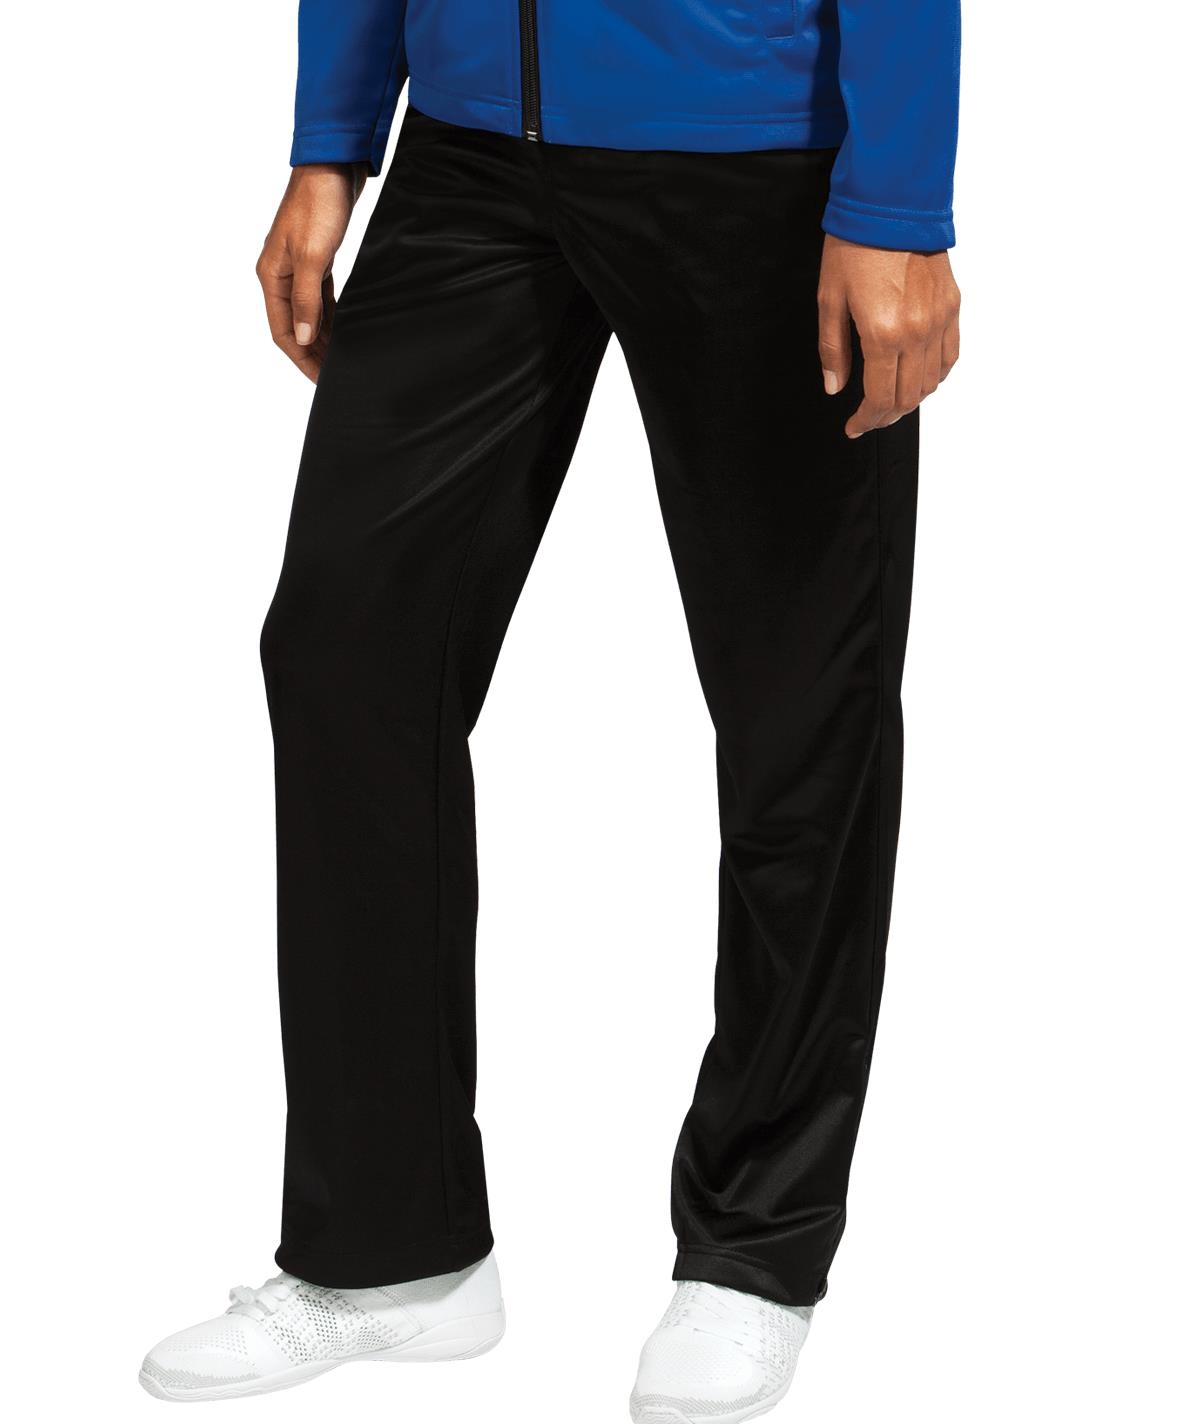 ION Athletics Motivation Pant